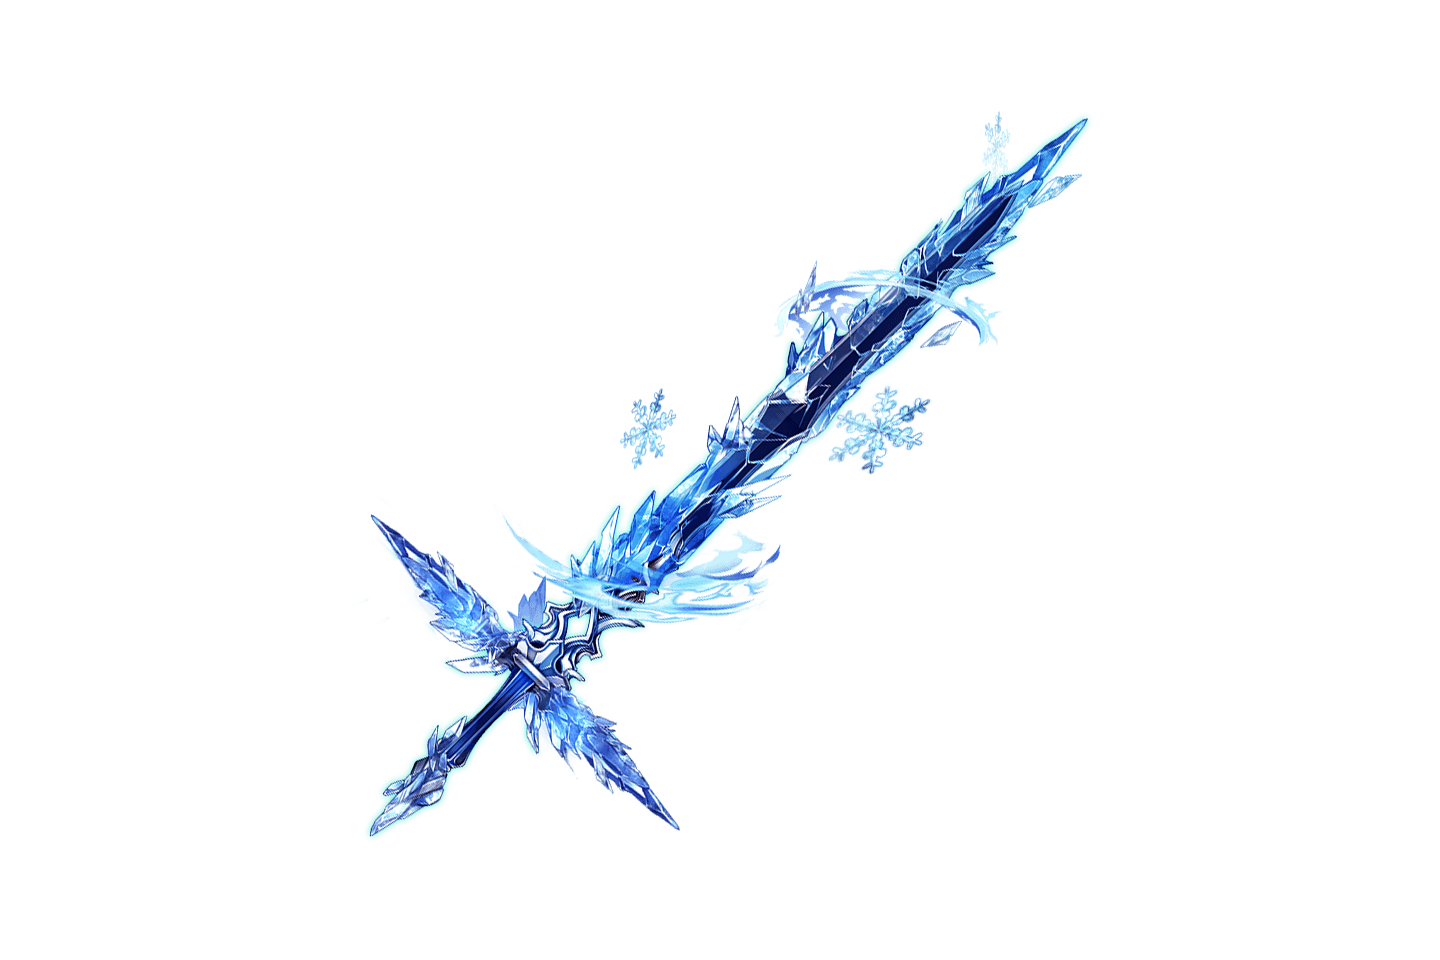 Curse Ice Sword Cryo Shree